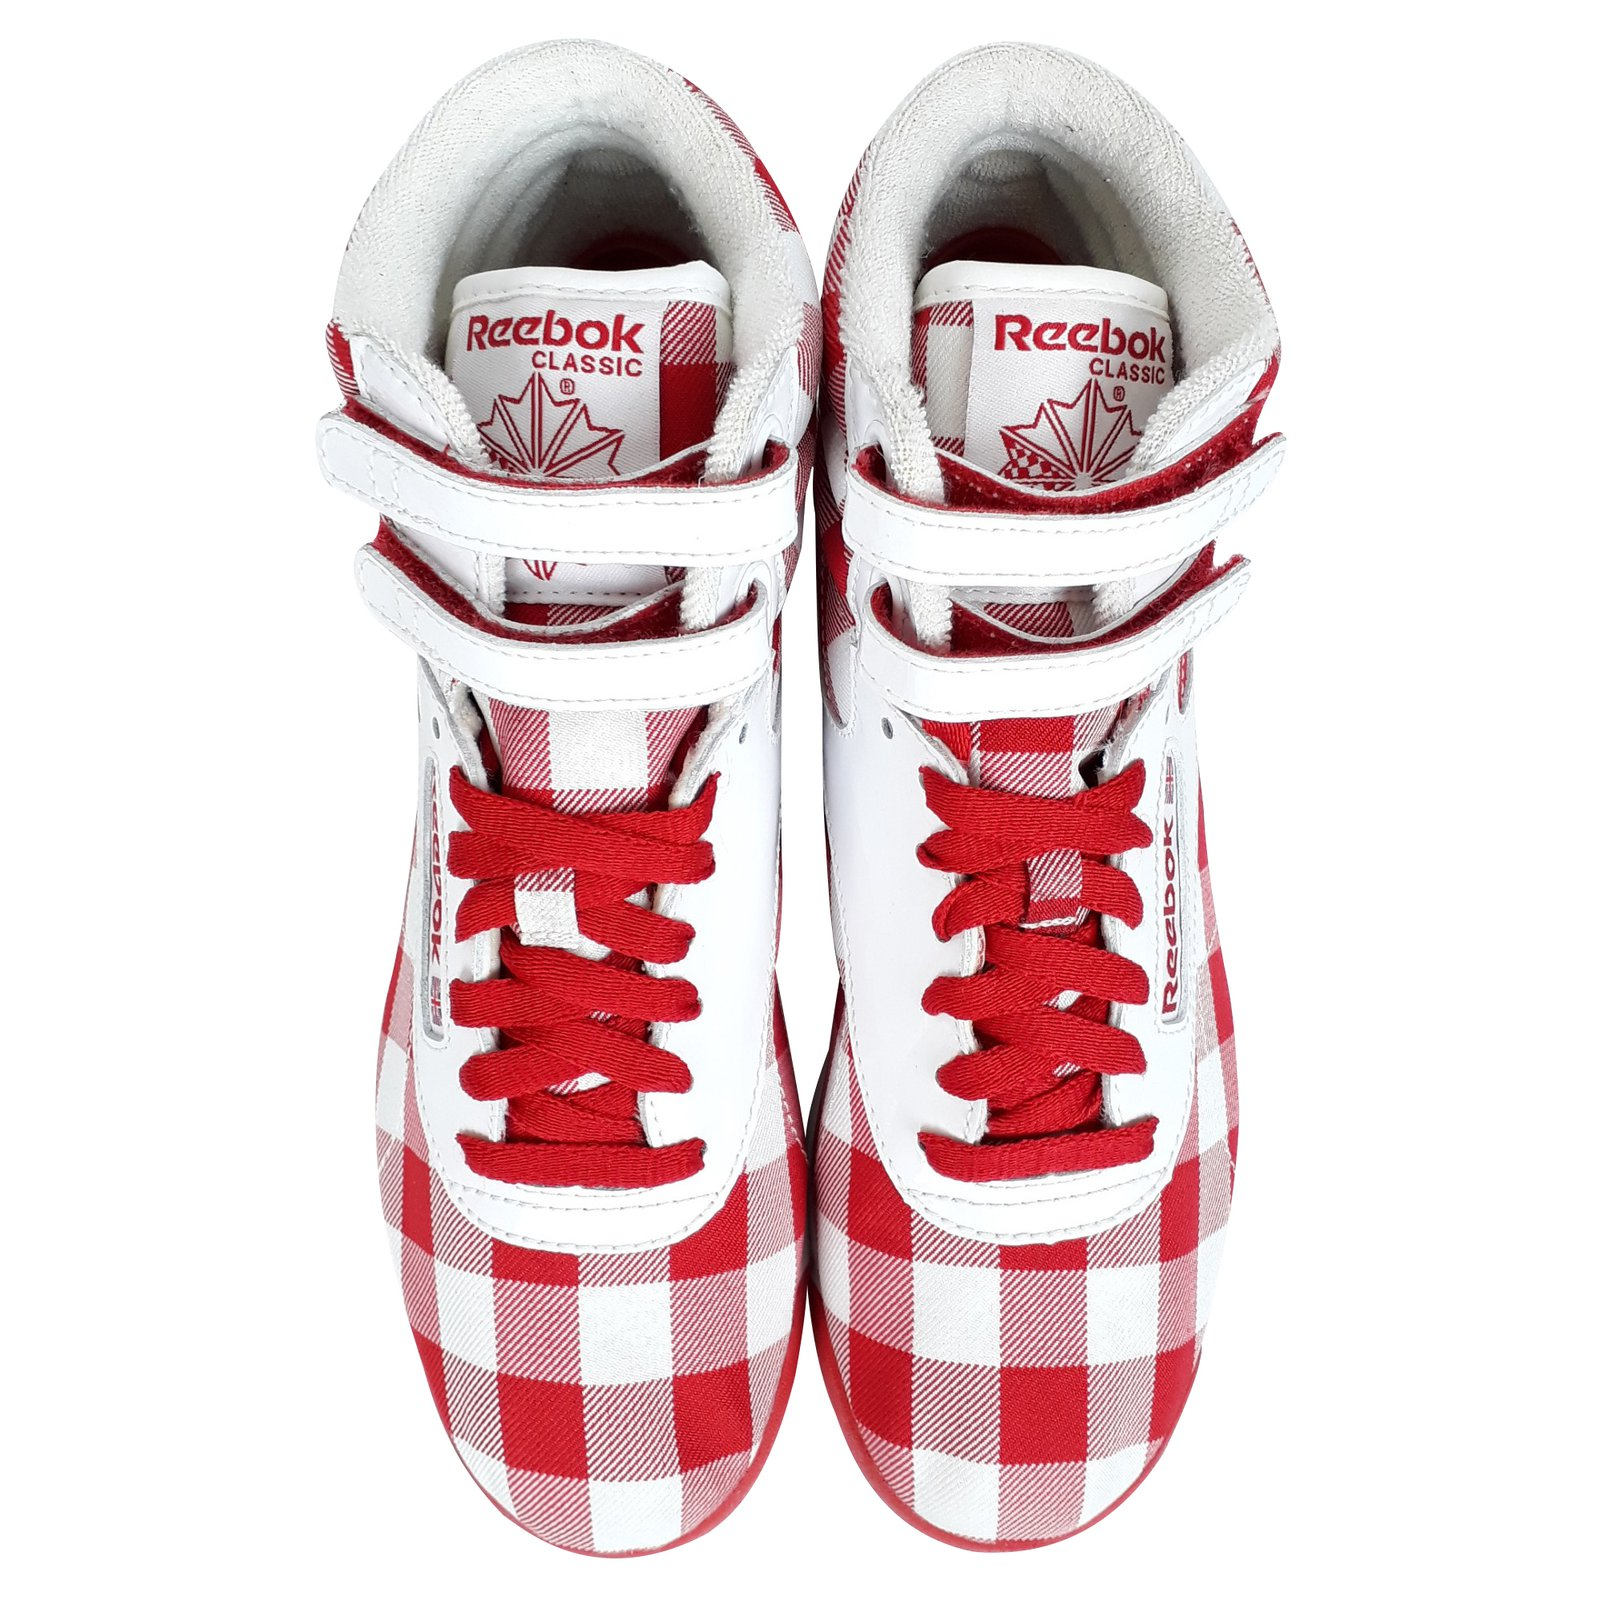 Taille 5 Reebok Classic Montantes Hi Baskets Freestyle 37 mn0vN8w